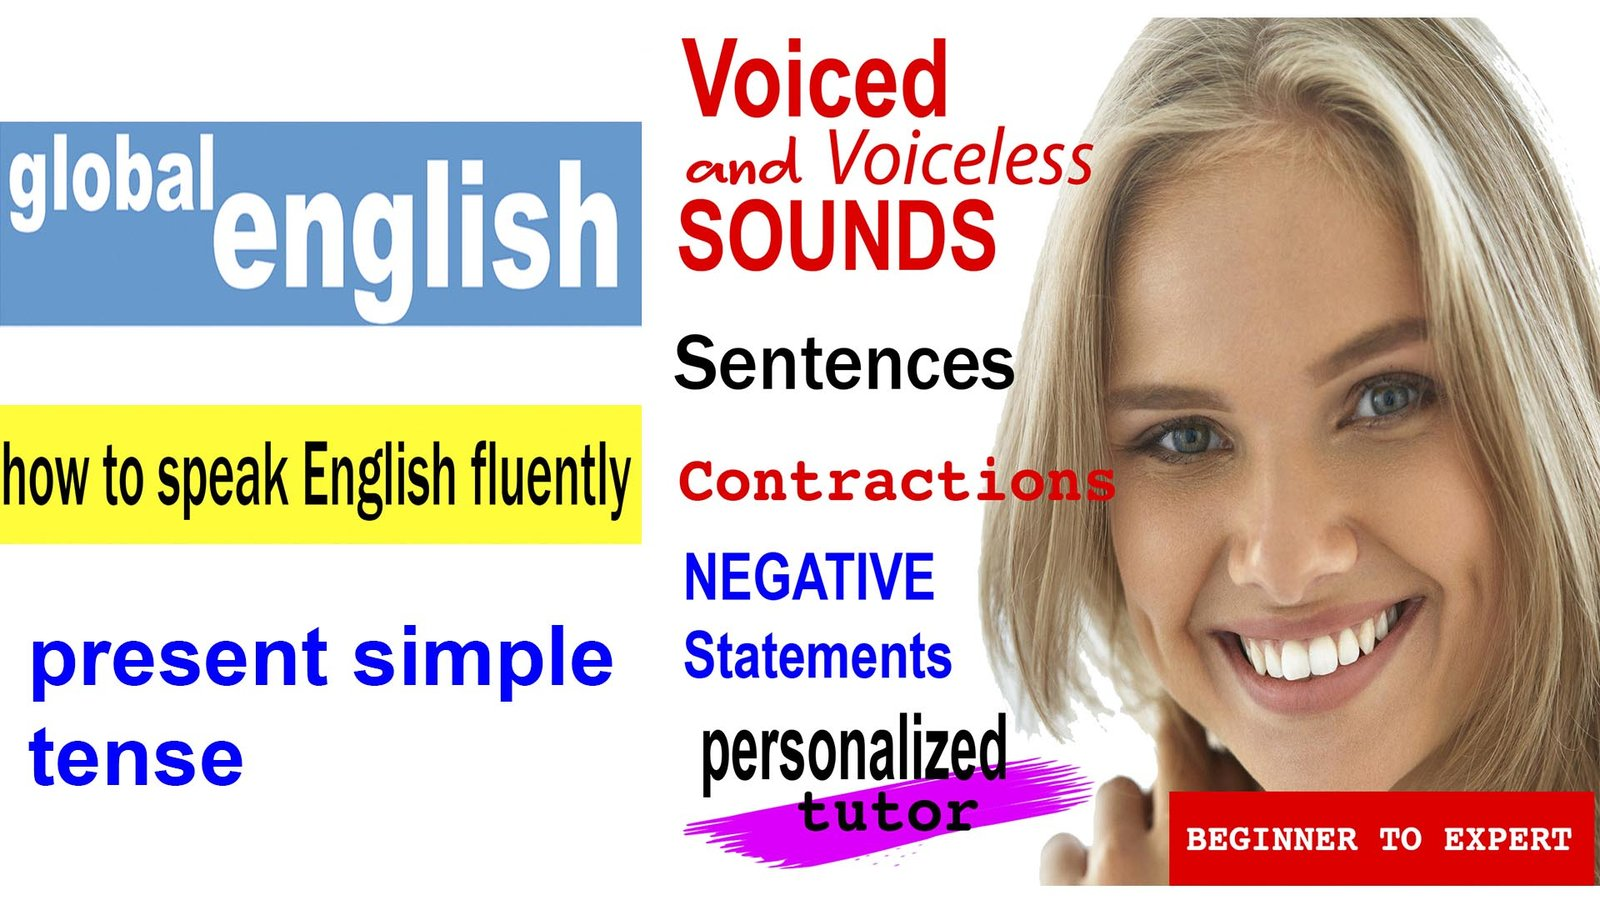 Global English Course 1 Lesson 3: Learn English as a Second Language - Present Simple Tense Sentence Forms (Positive, Negative, Question), Contractions (Does Not/Doesn't, Is Not/Isn't), Pronunciation (Voiced and Voiceless Sounds, Words Endings (S, CH, IZ)